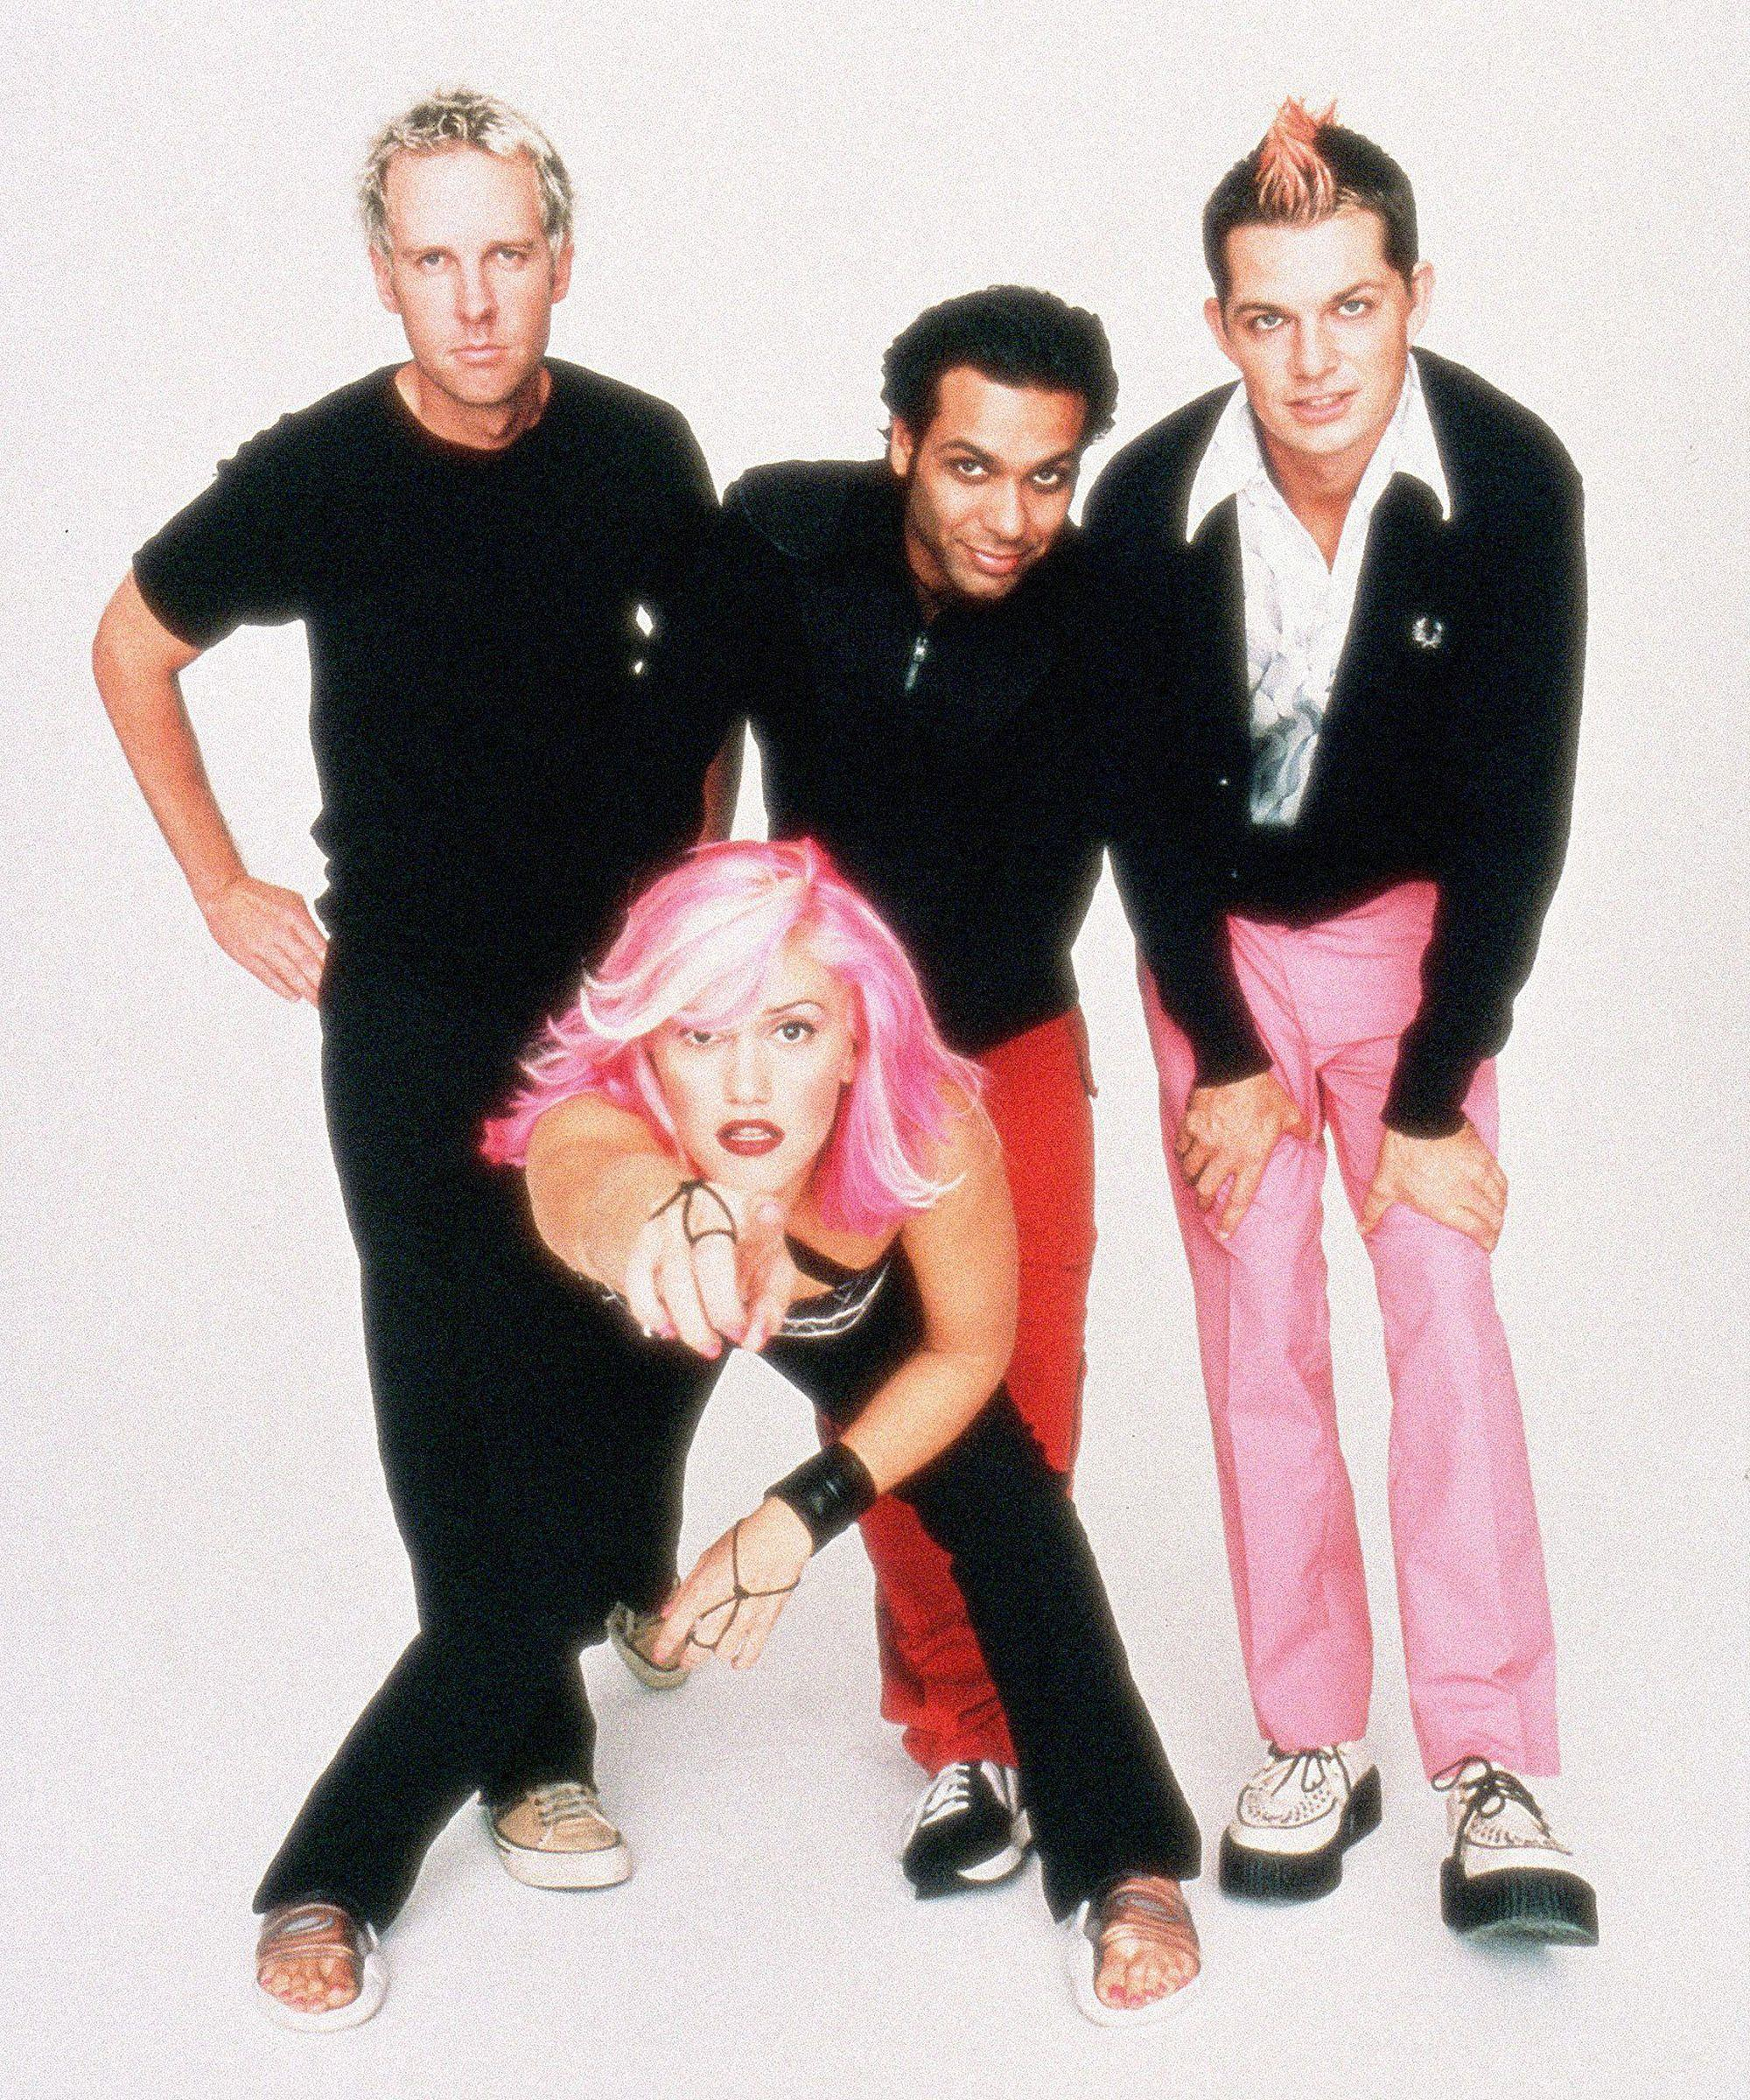 No Doubt Have Formed A New Band Without Gwen Stefani